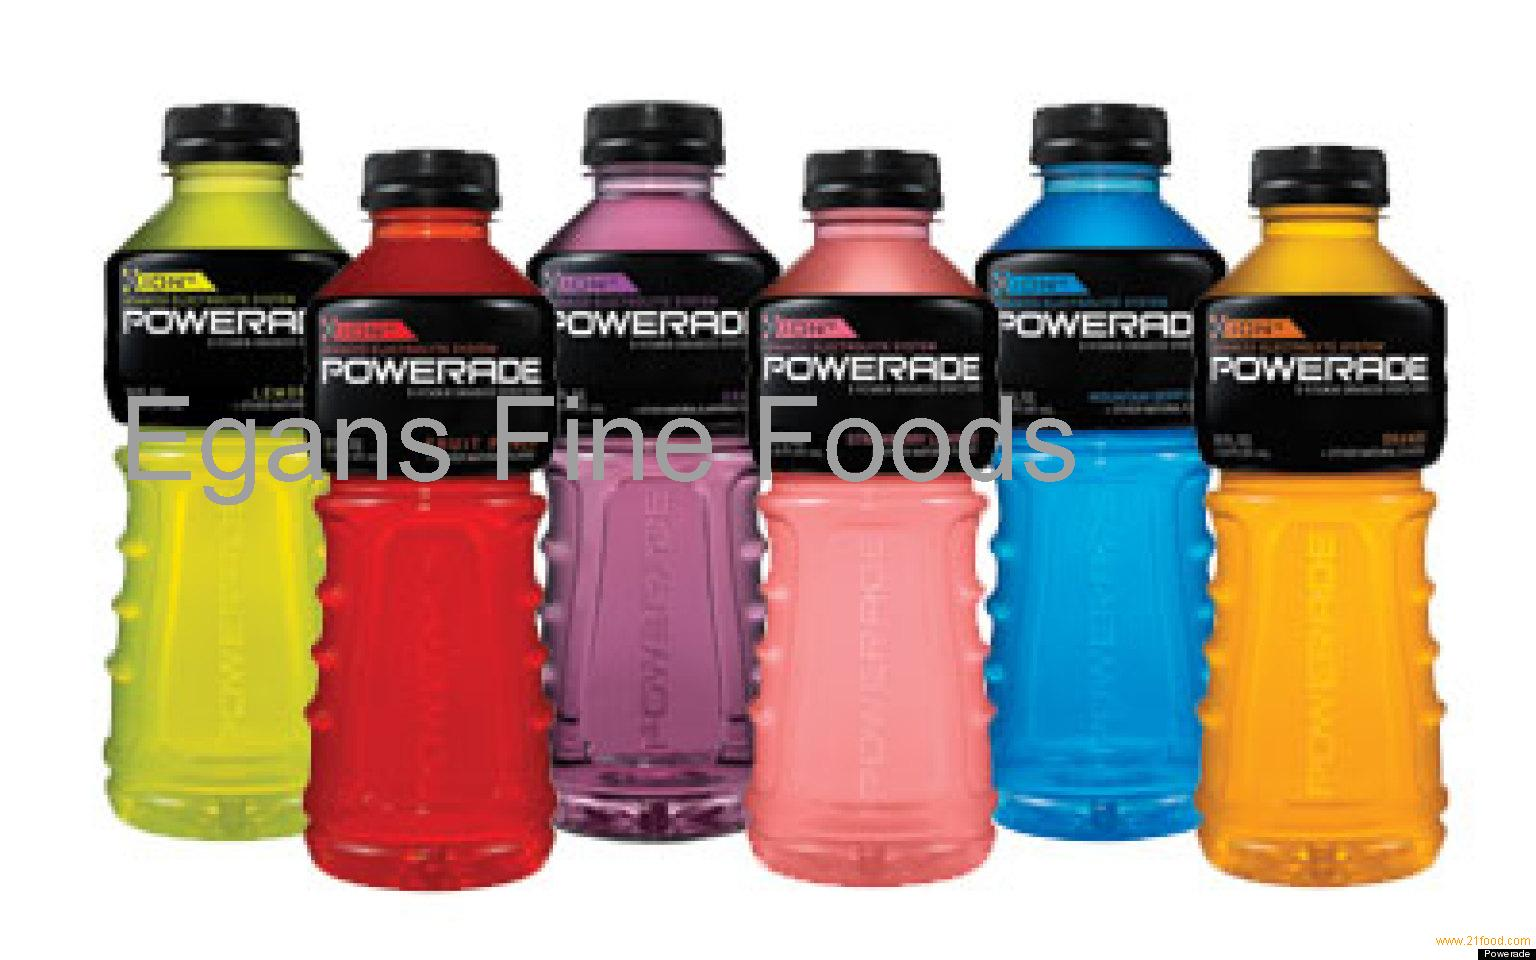 POWERADE SPORT DRINK from Ireland Selling Leads -21food.com